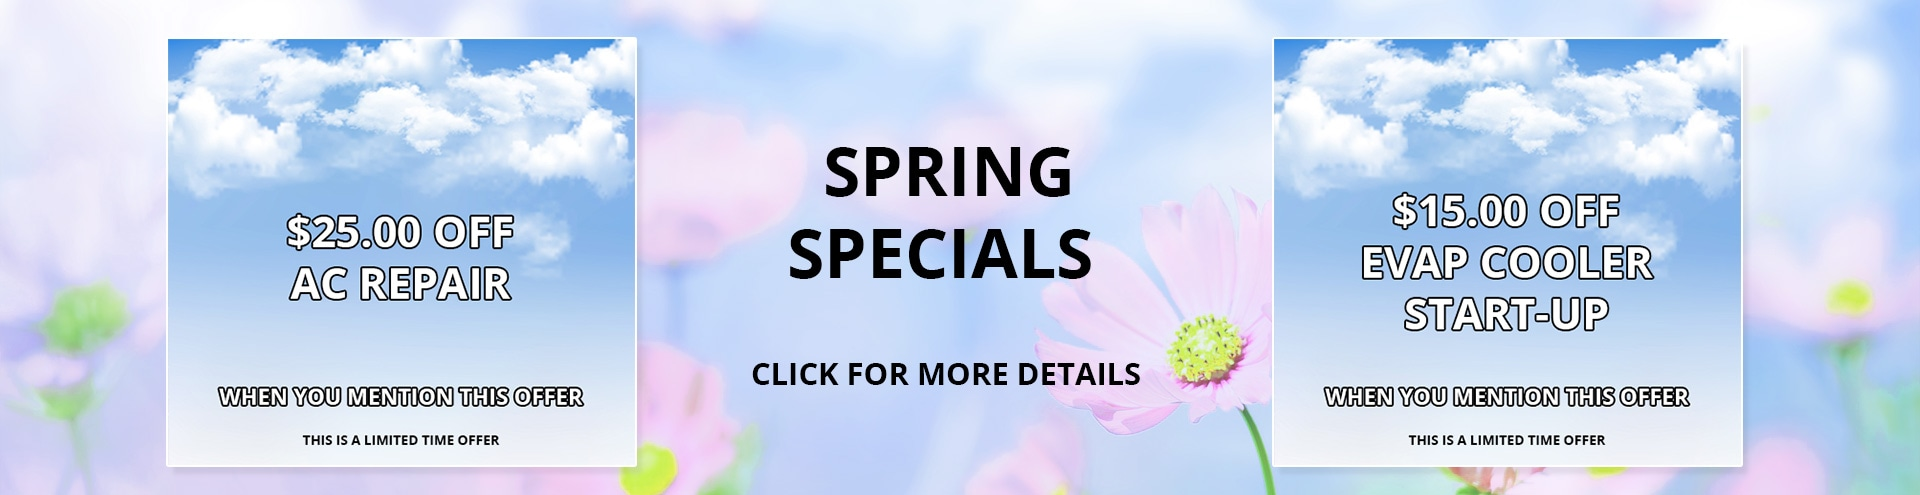 Spring Specials for $25.00 Off AC Repair, or $15.00 Off Evap Cooler Start-up